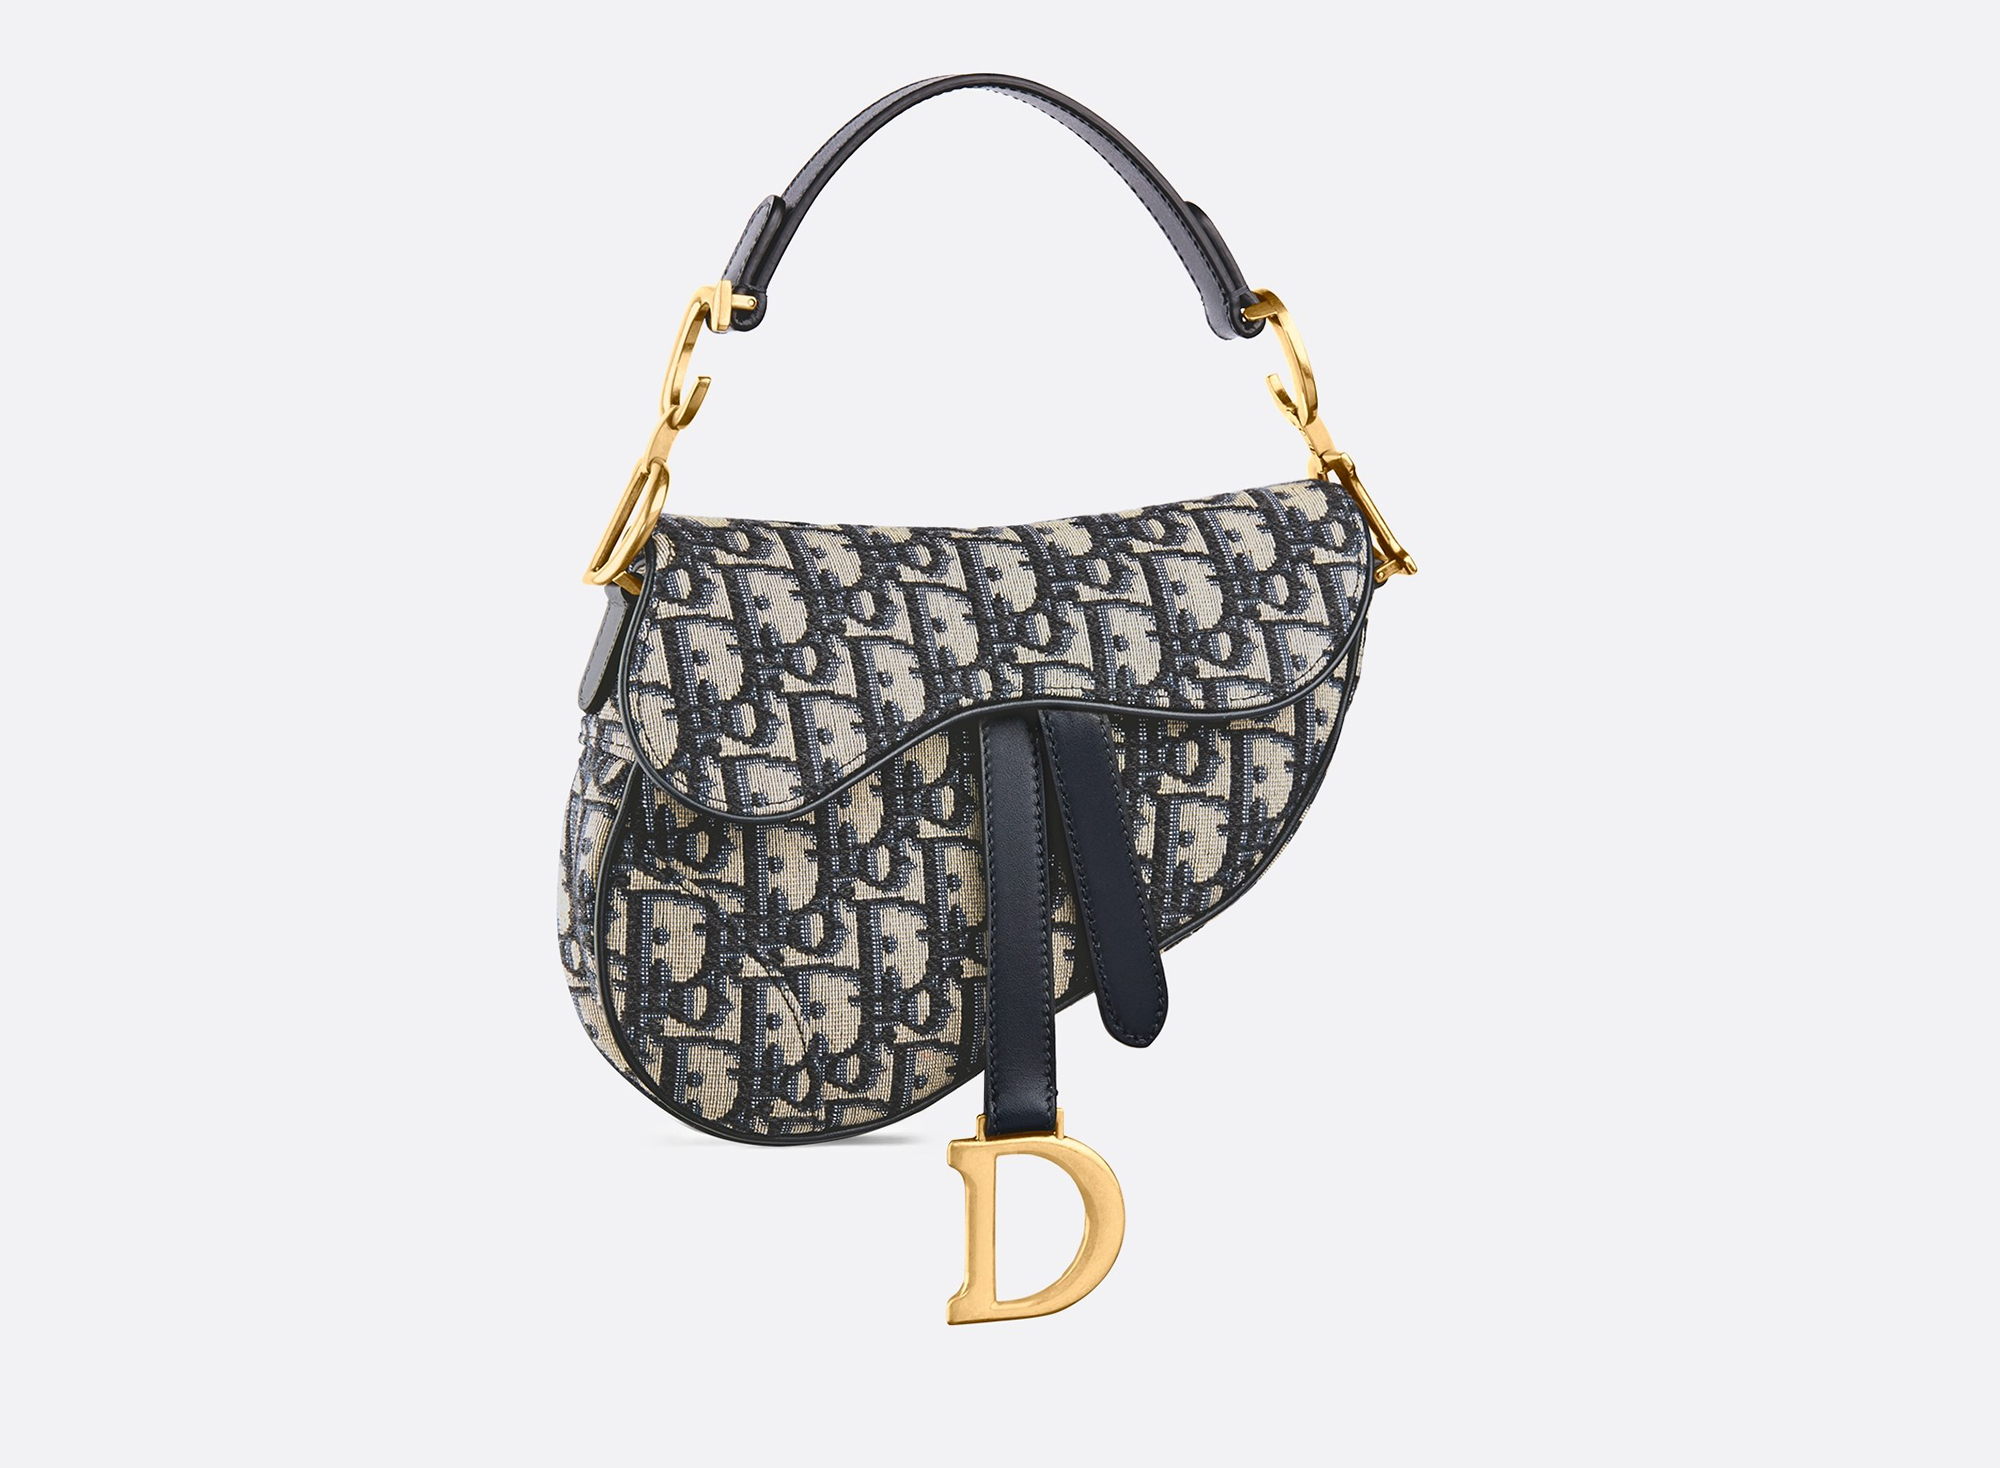 Dior-bag - Party like it's 1999! Bella Hadid rocks the tiny handbag, first designed in '99 and made popular by Paris Hilton in her Simple Life era.